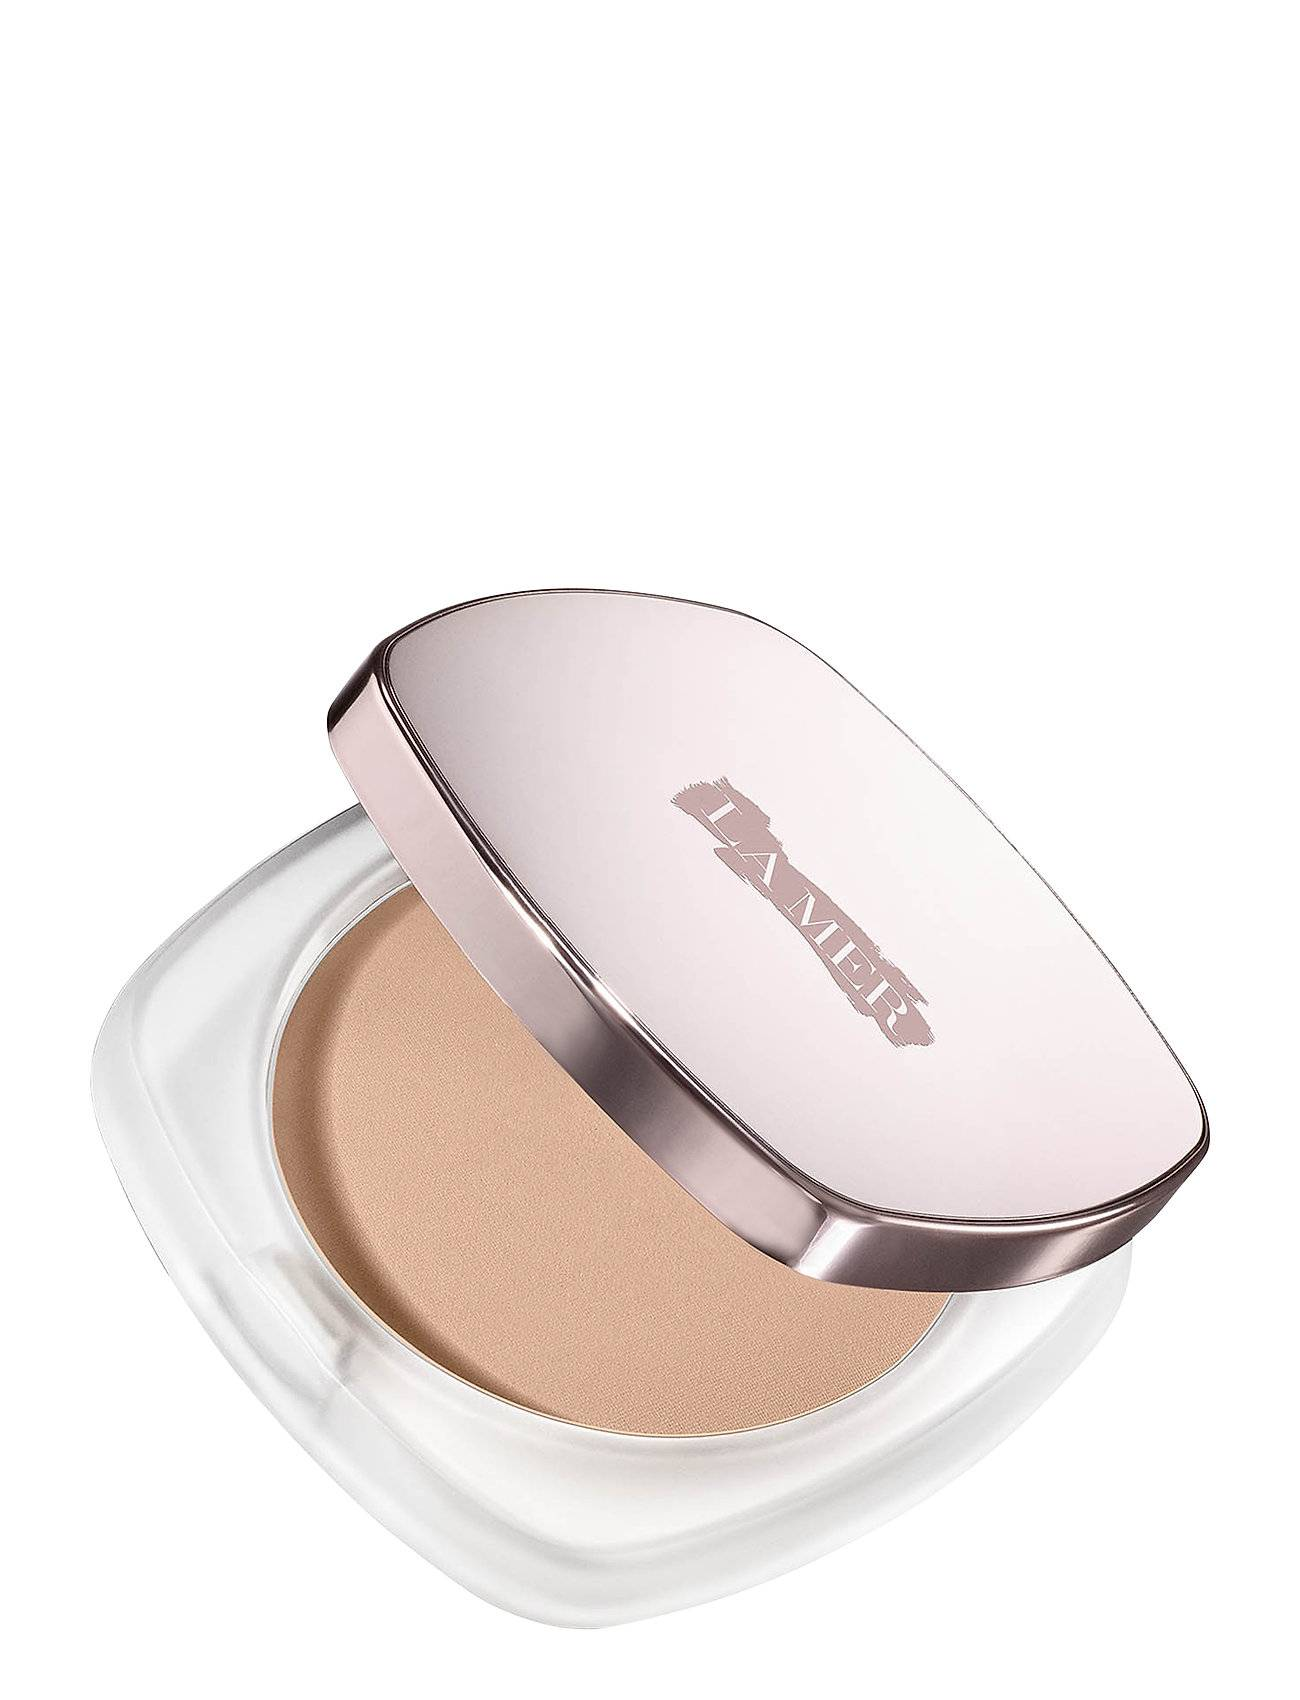 La Mer The Sheer Pressed Powder Translucent 8g